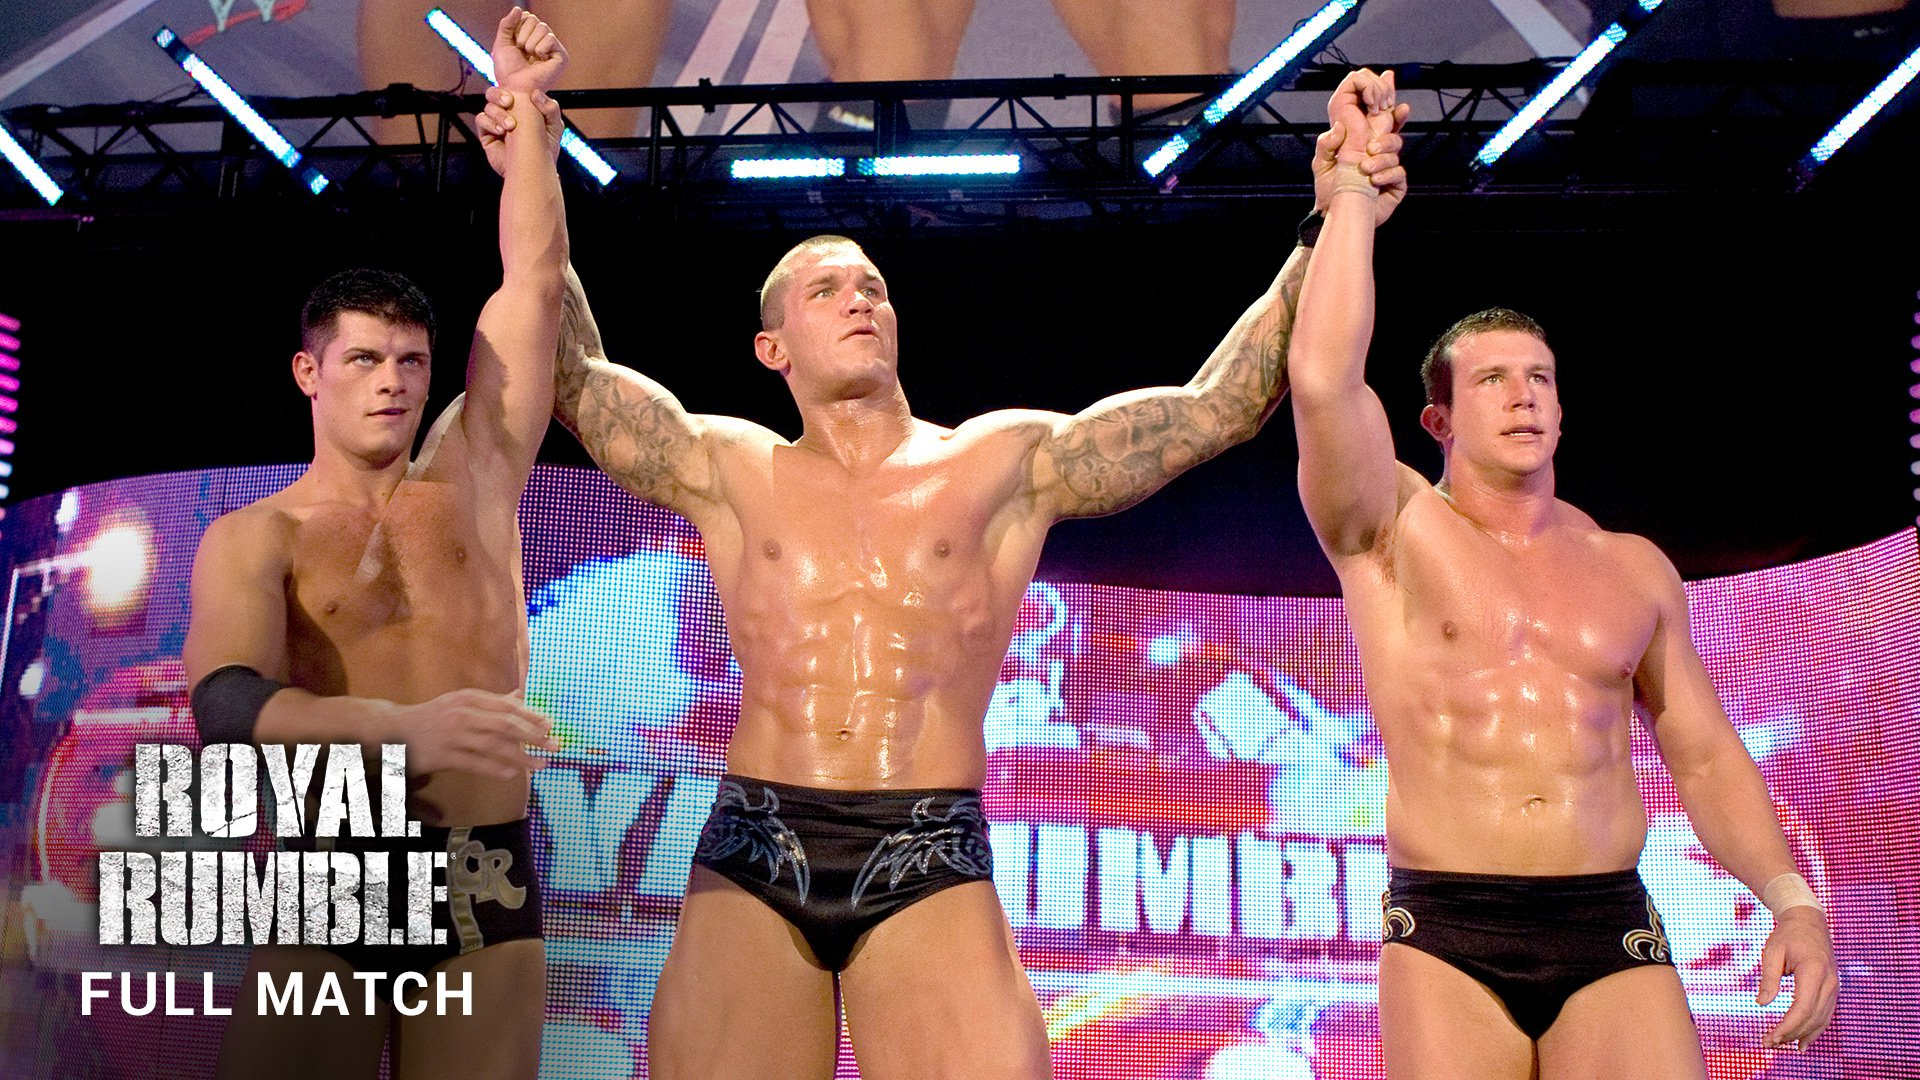 WWE Network: Royal Rumble Match (Match Intégral): Royal Rumble 2009